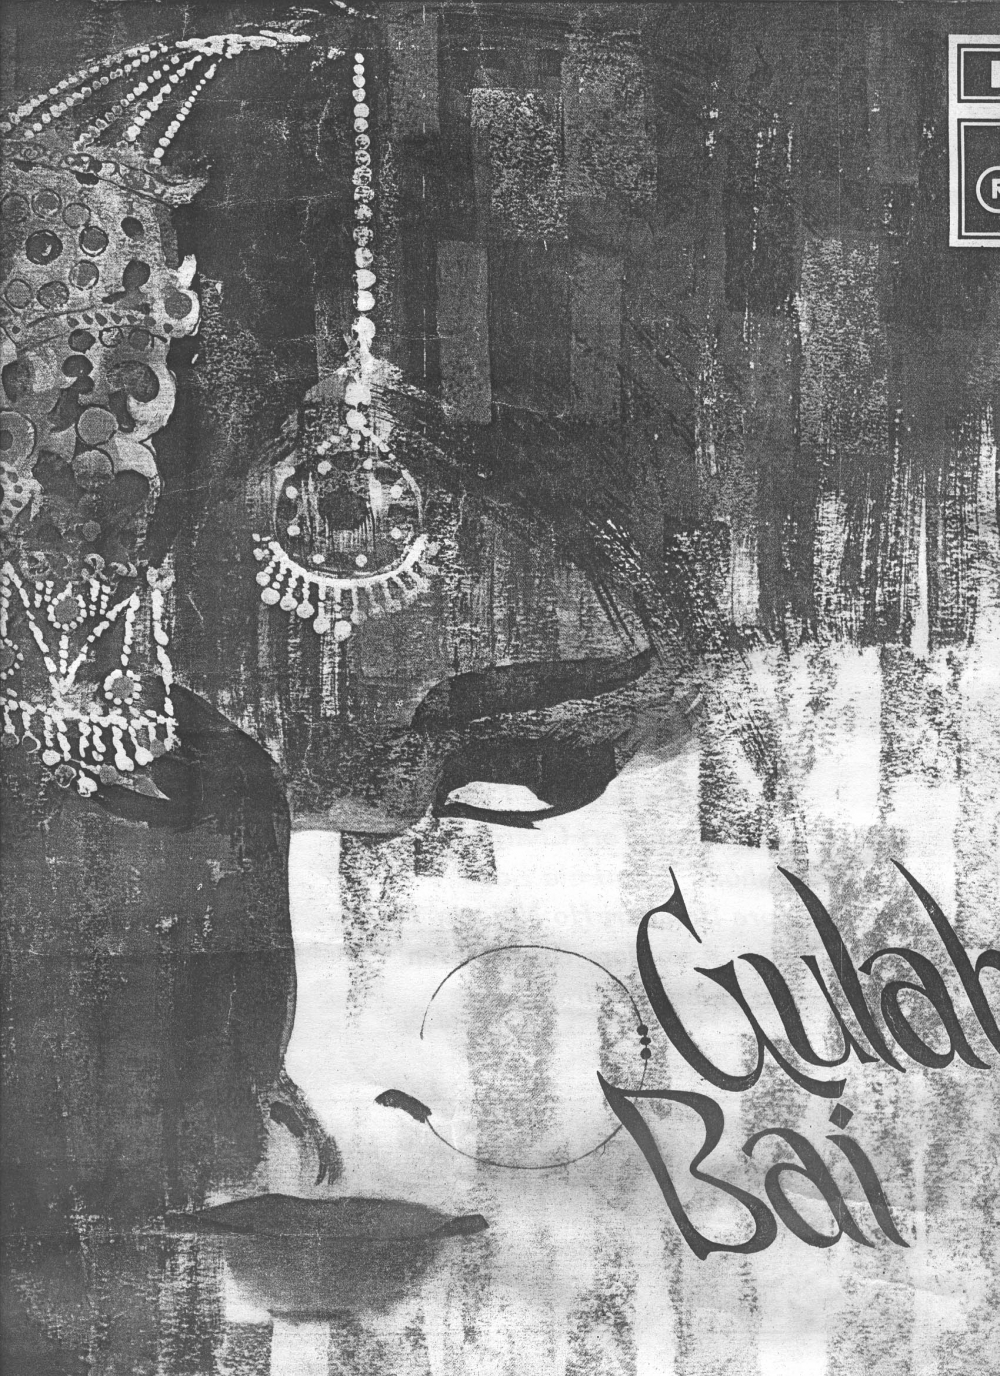 Fig. 1: Cover jacket of Gulab Bai's long-playing record, brought out by the Gramophone Company of India Ltd, part of the EMI group (Courtesy: Deepti Priya Mehrotra)